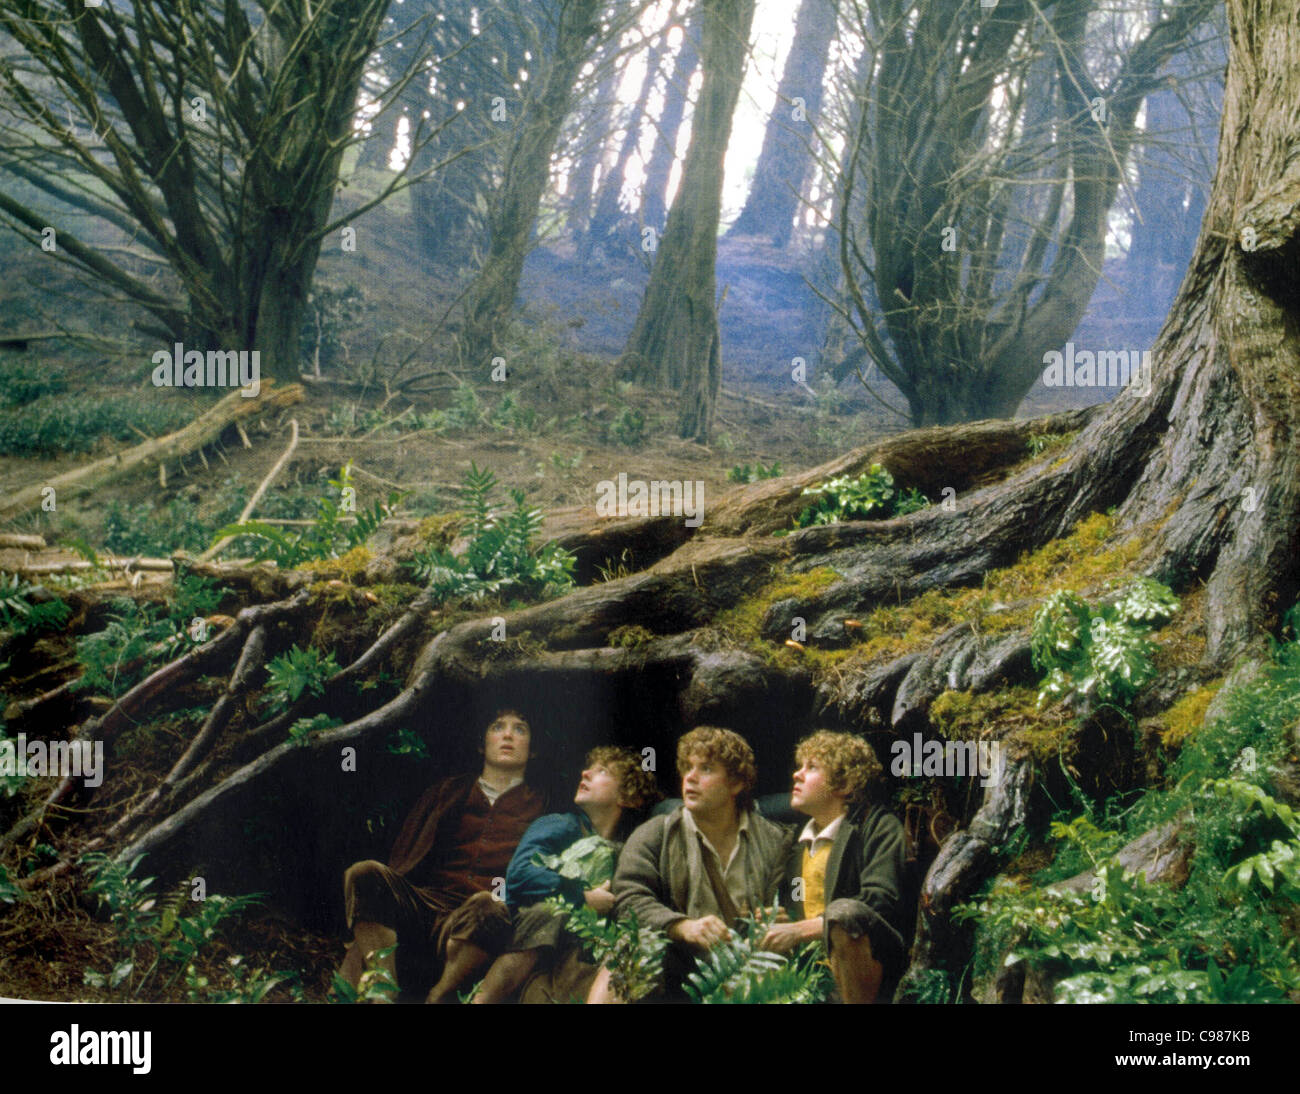 hobbit fantasy forest trees - photo #4